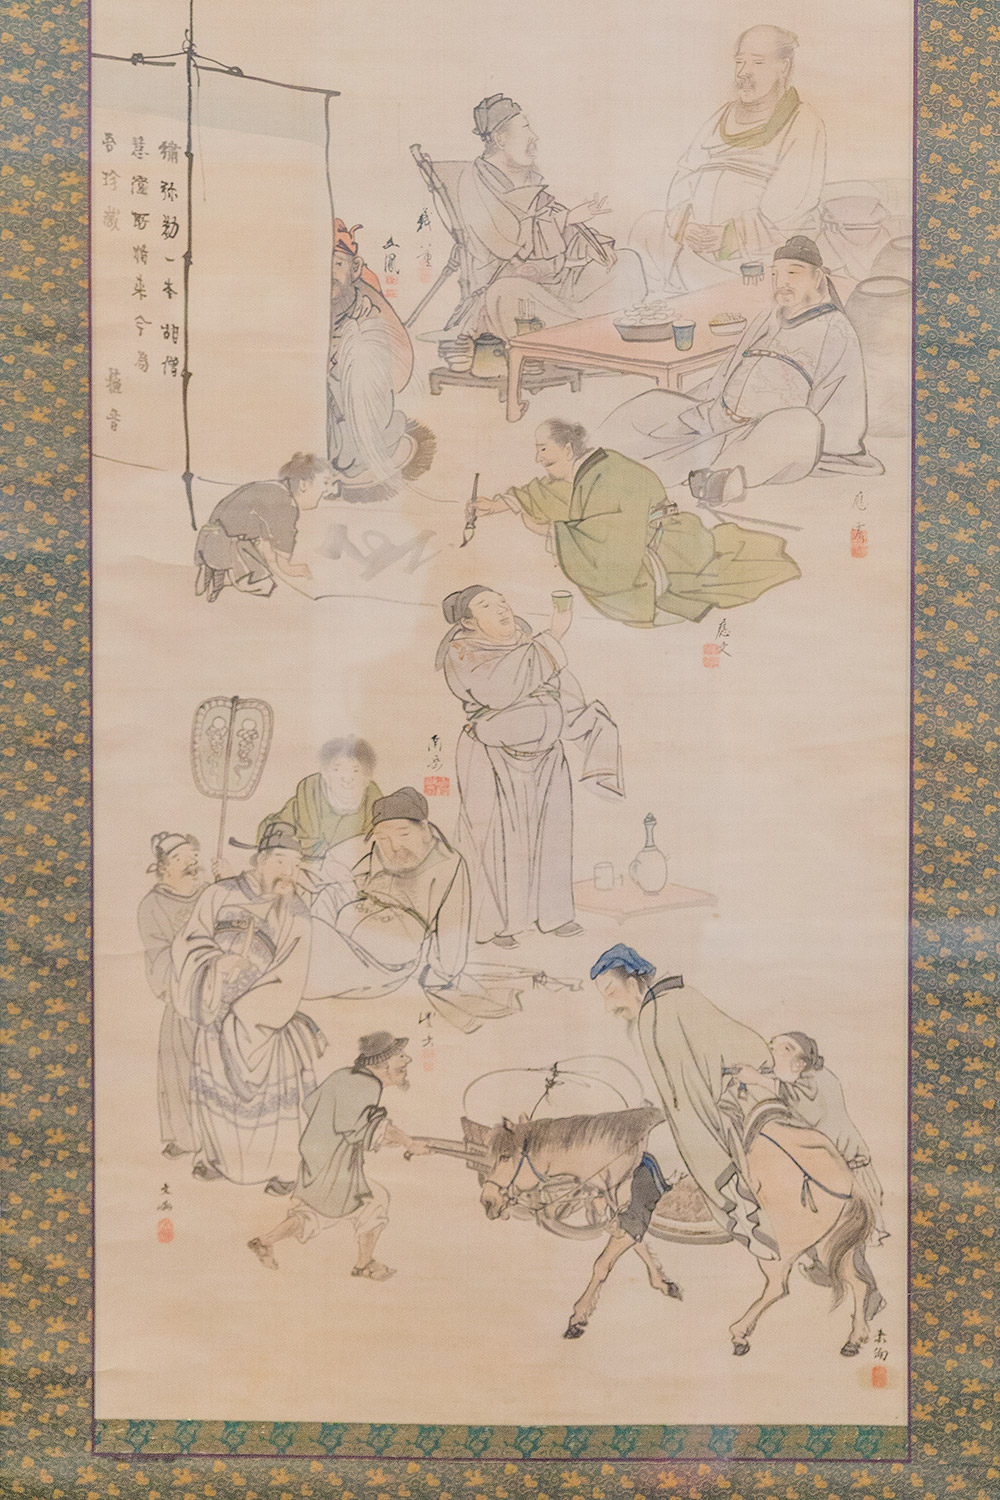 Eight Chinese Immortals of the Wine Cup, 1750-1800. Hanging scroll; ink and light color on silk. Promised gift of Robert S. and Betsy G. Feinberg.